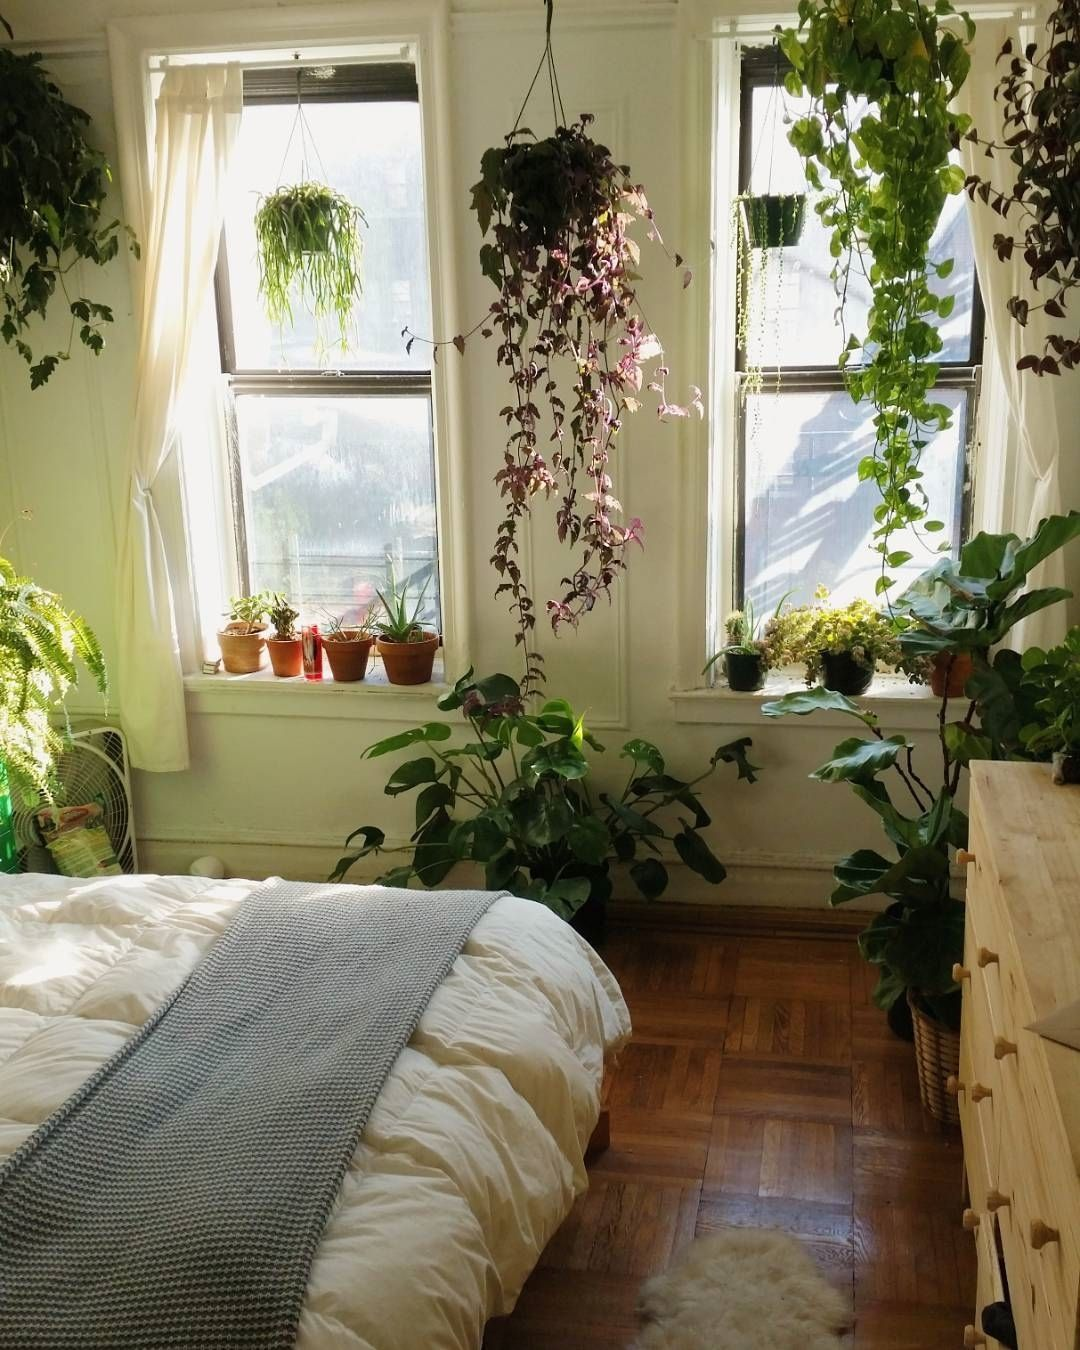 Urban Jungle Bloggers On Instagram: U201cWe Could Stay Here All Sunday  :@friendlyghosts #urbanjunglebloggersu201d